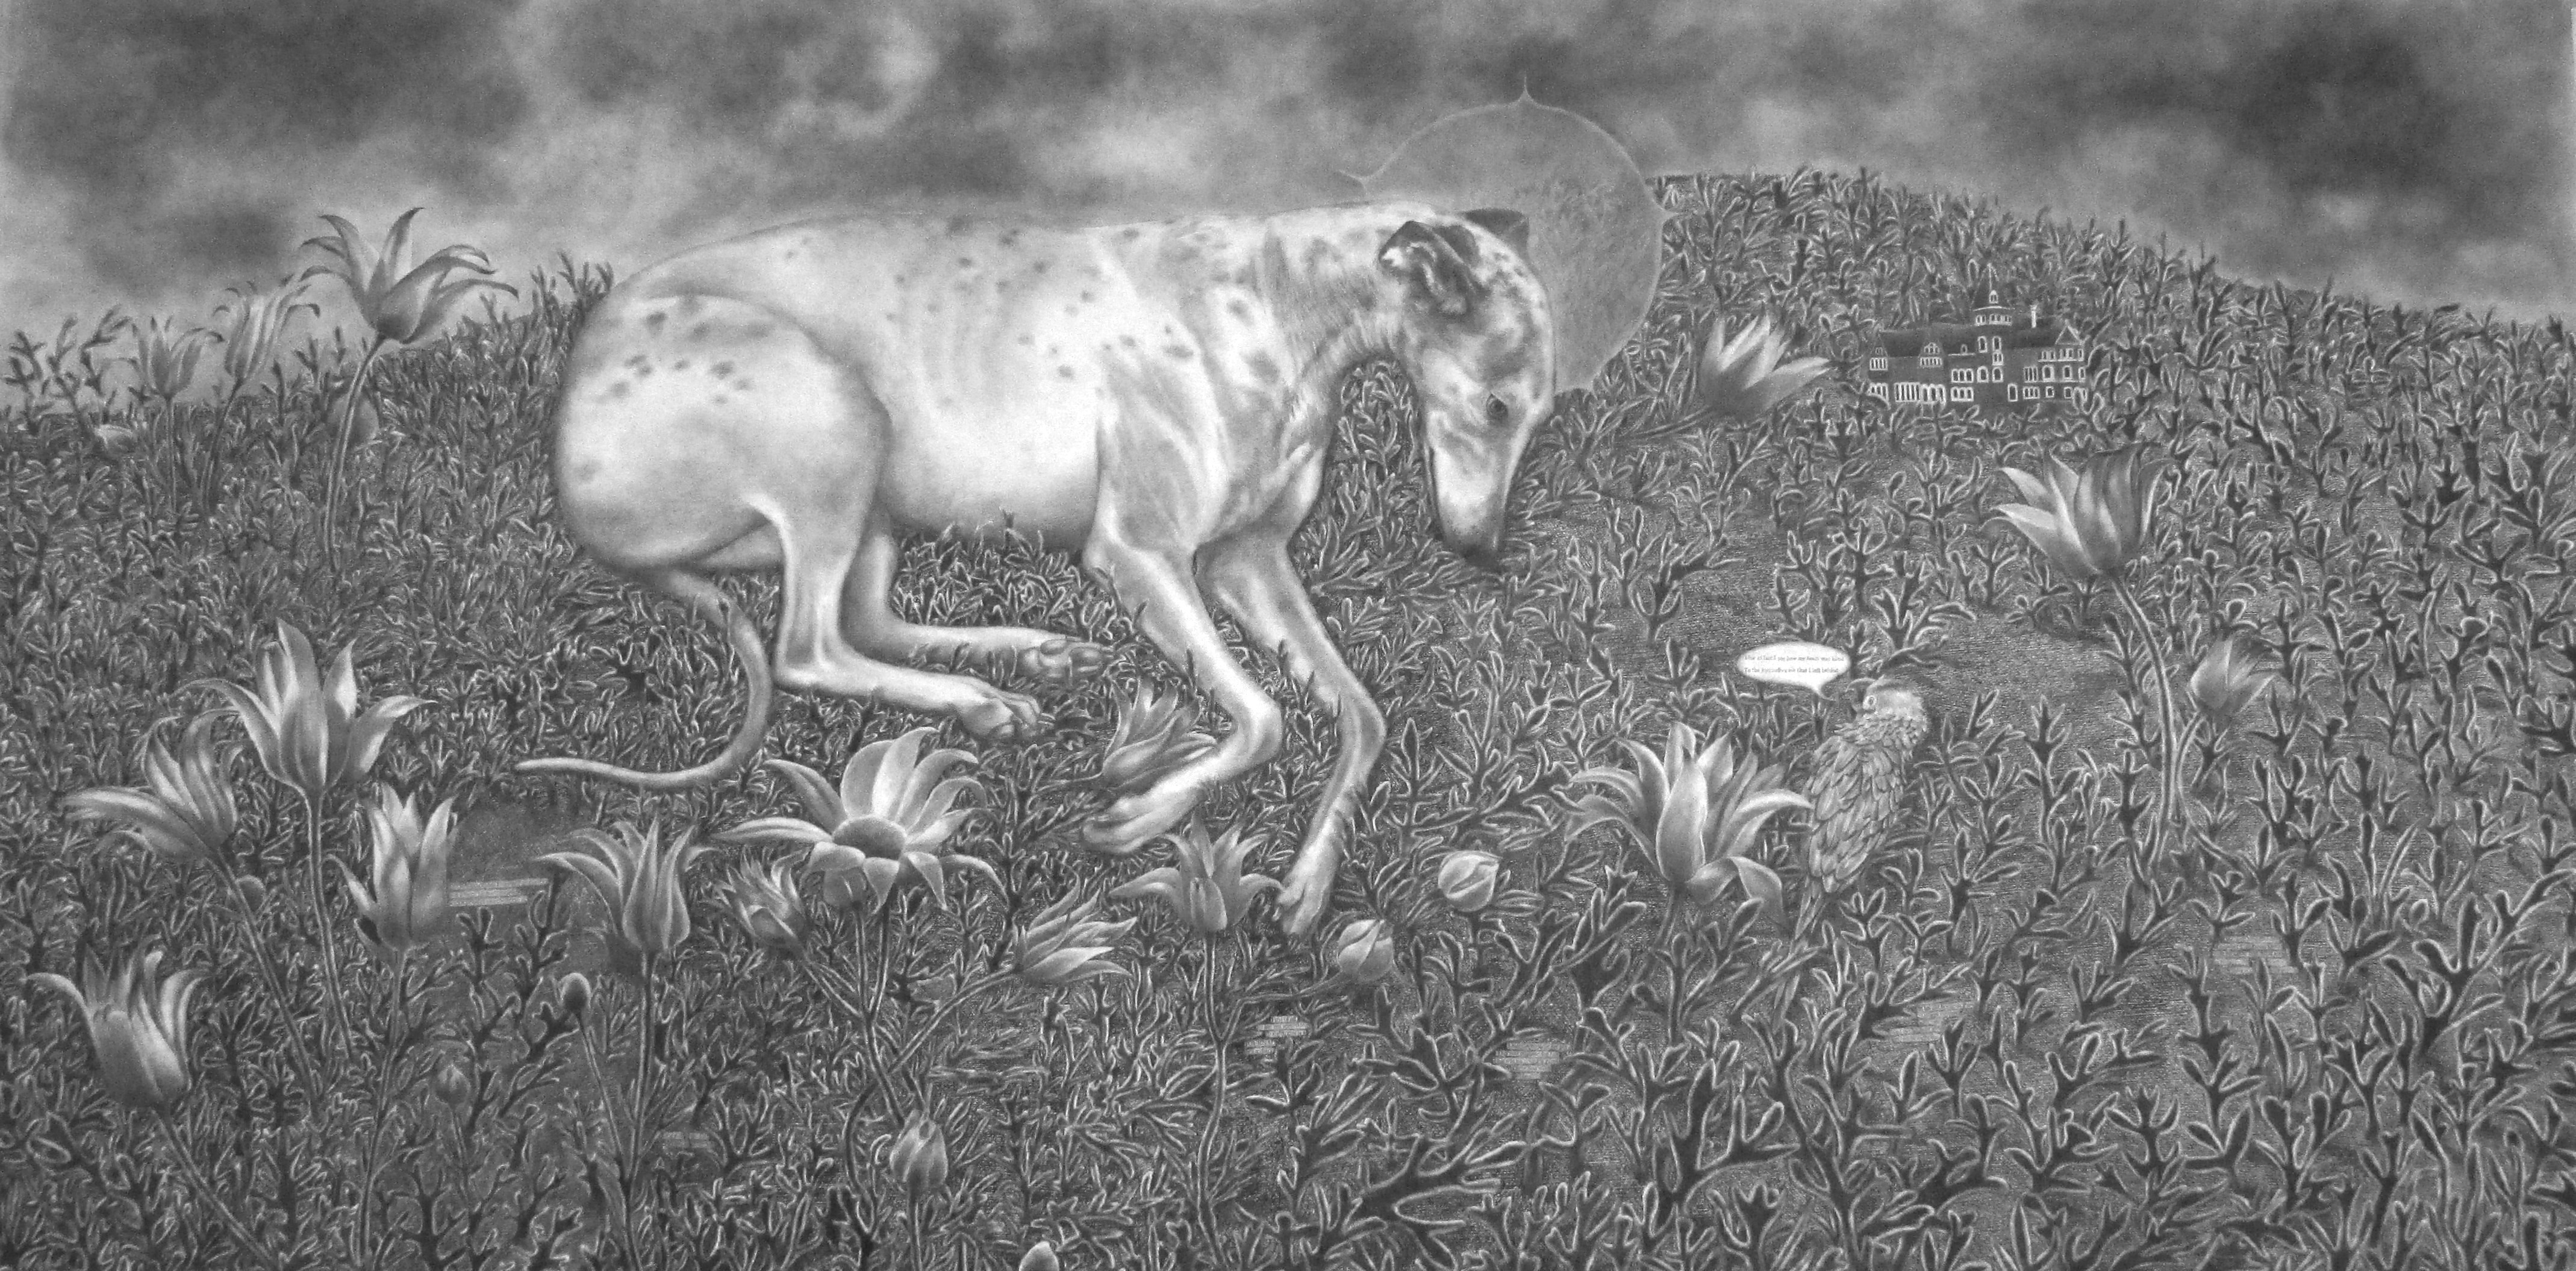 2014 - Respite for Saint Brigid of Kildare - Literacy Aide - (New Work of Dogs series) - graphite and charcoal on gessoed paper - 2014